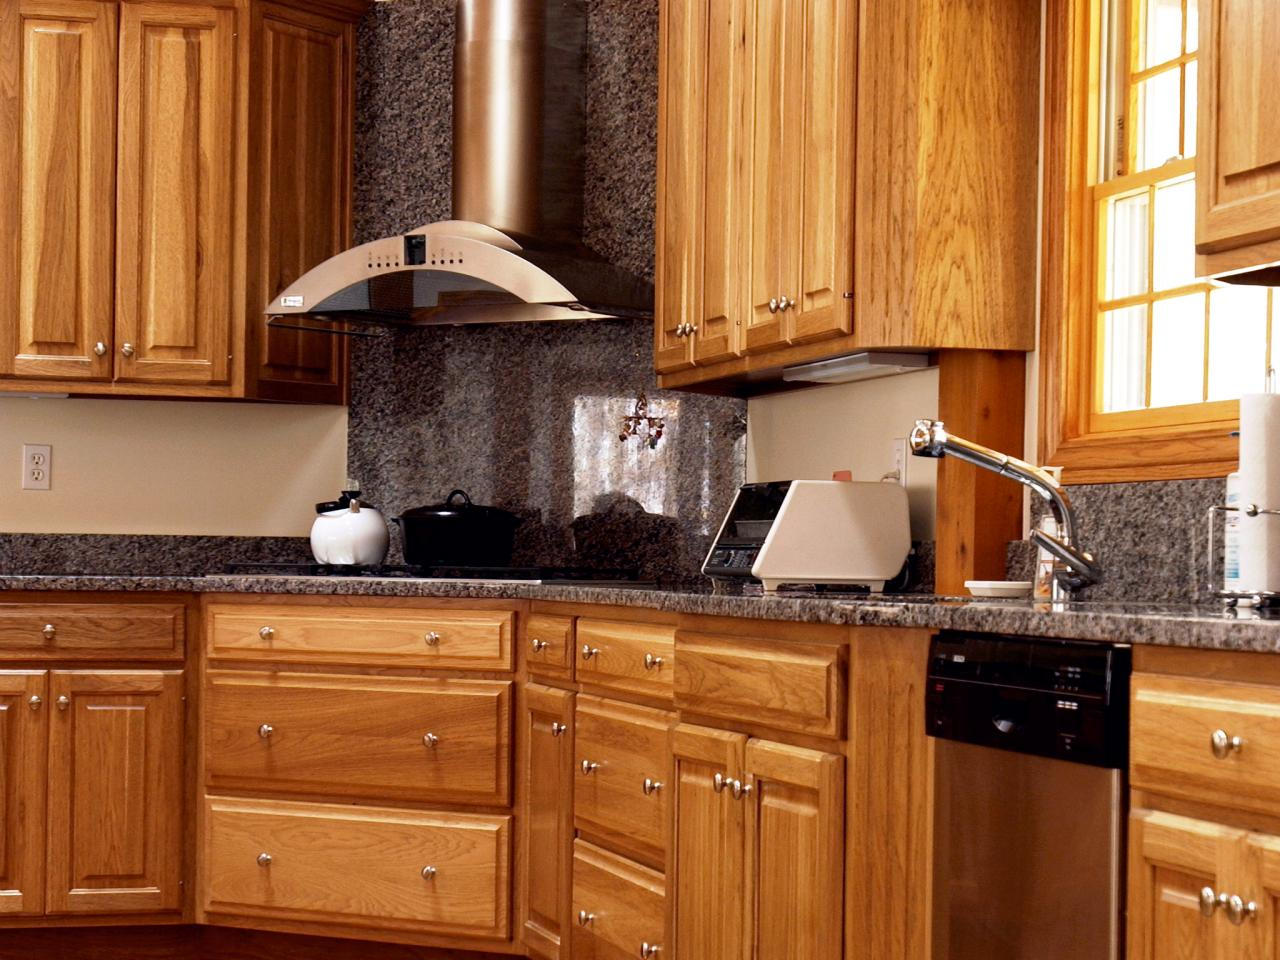 Amusing Design Of The Wood Kitchen Cabinets With Black Marble Backsplash Added With Silver Sink Ideas